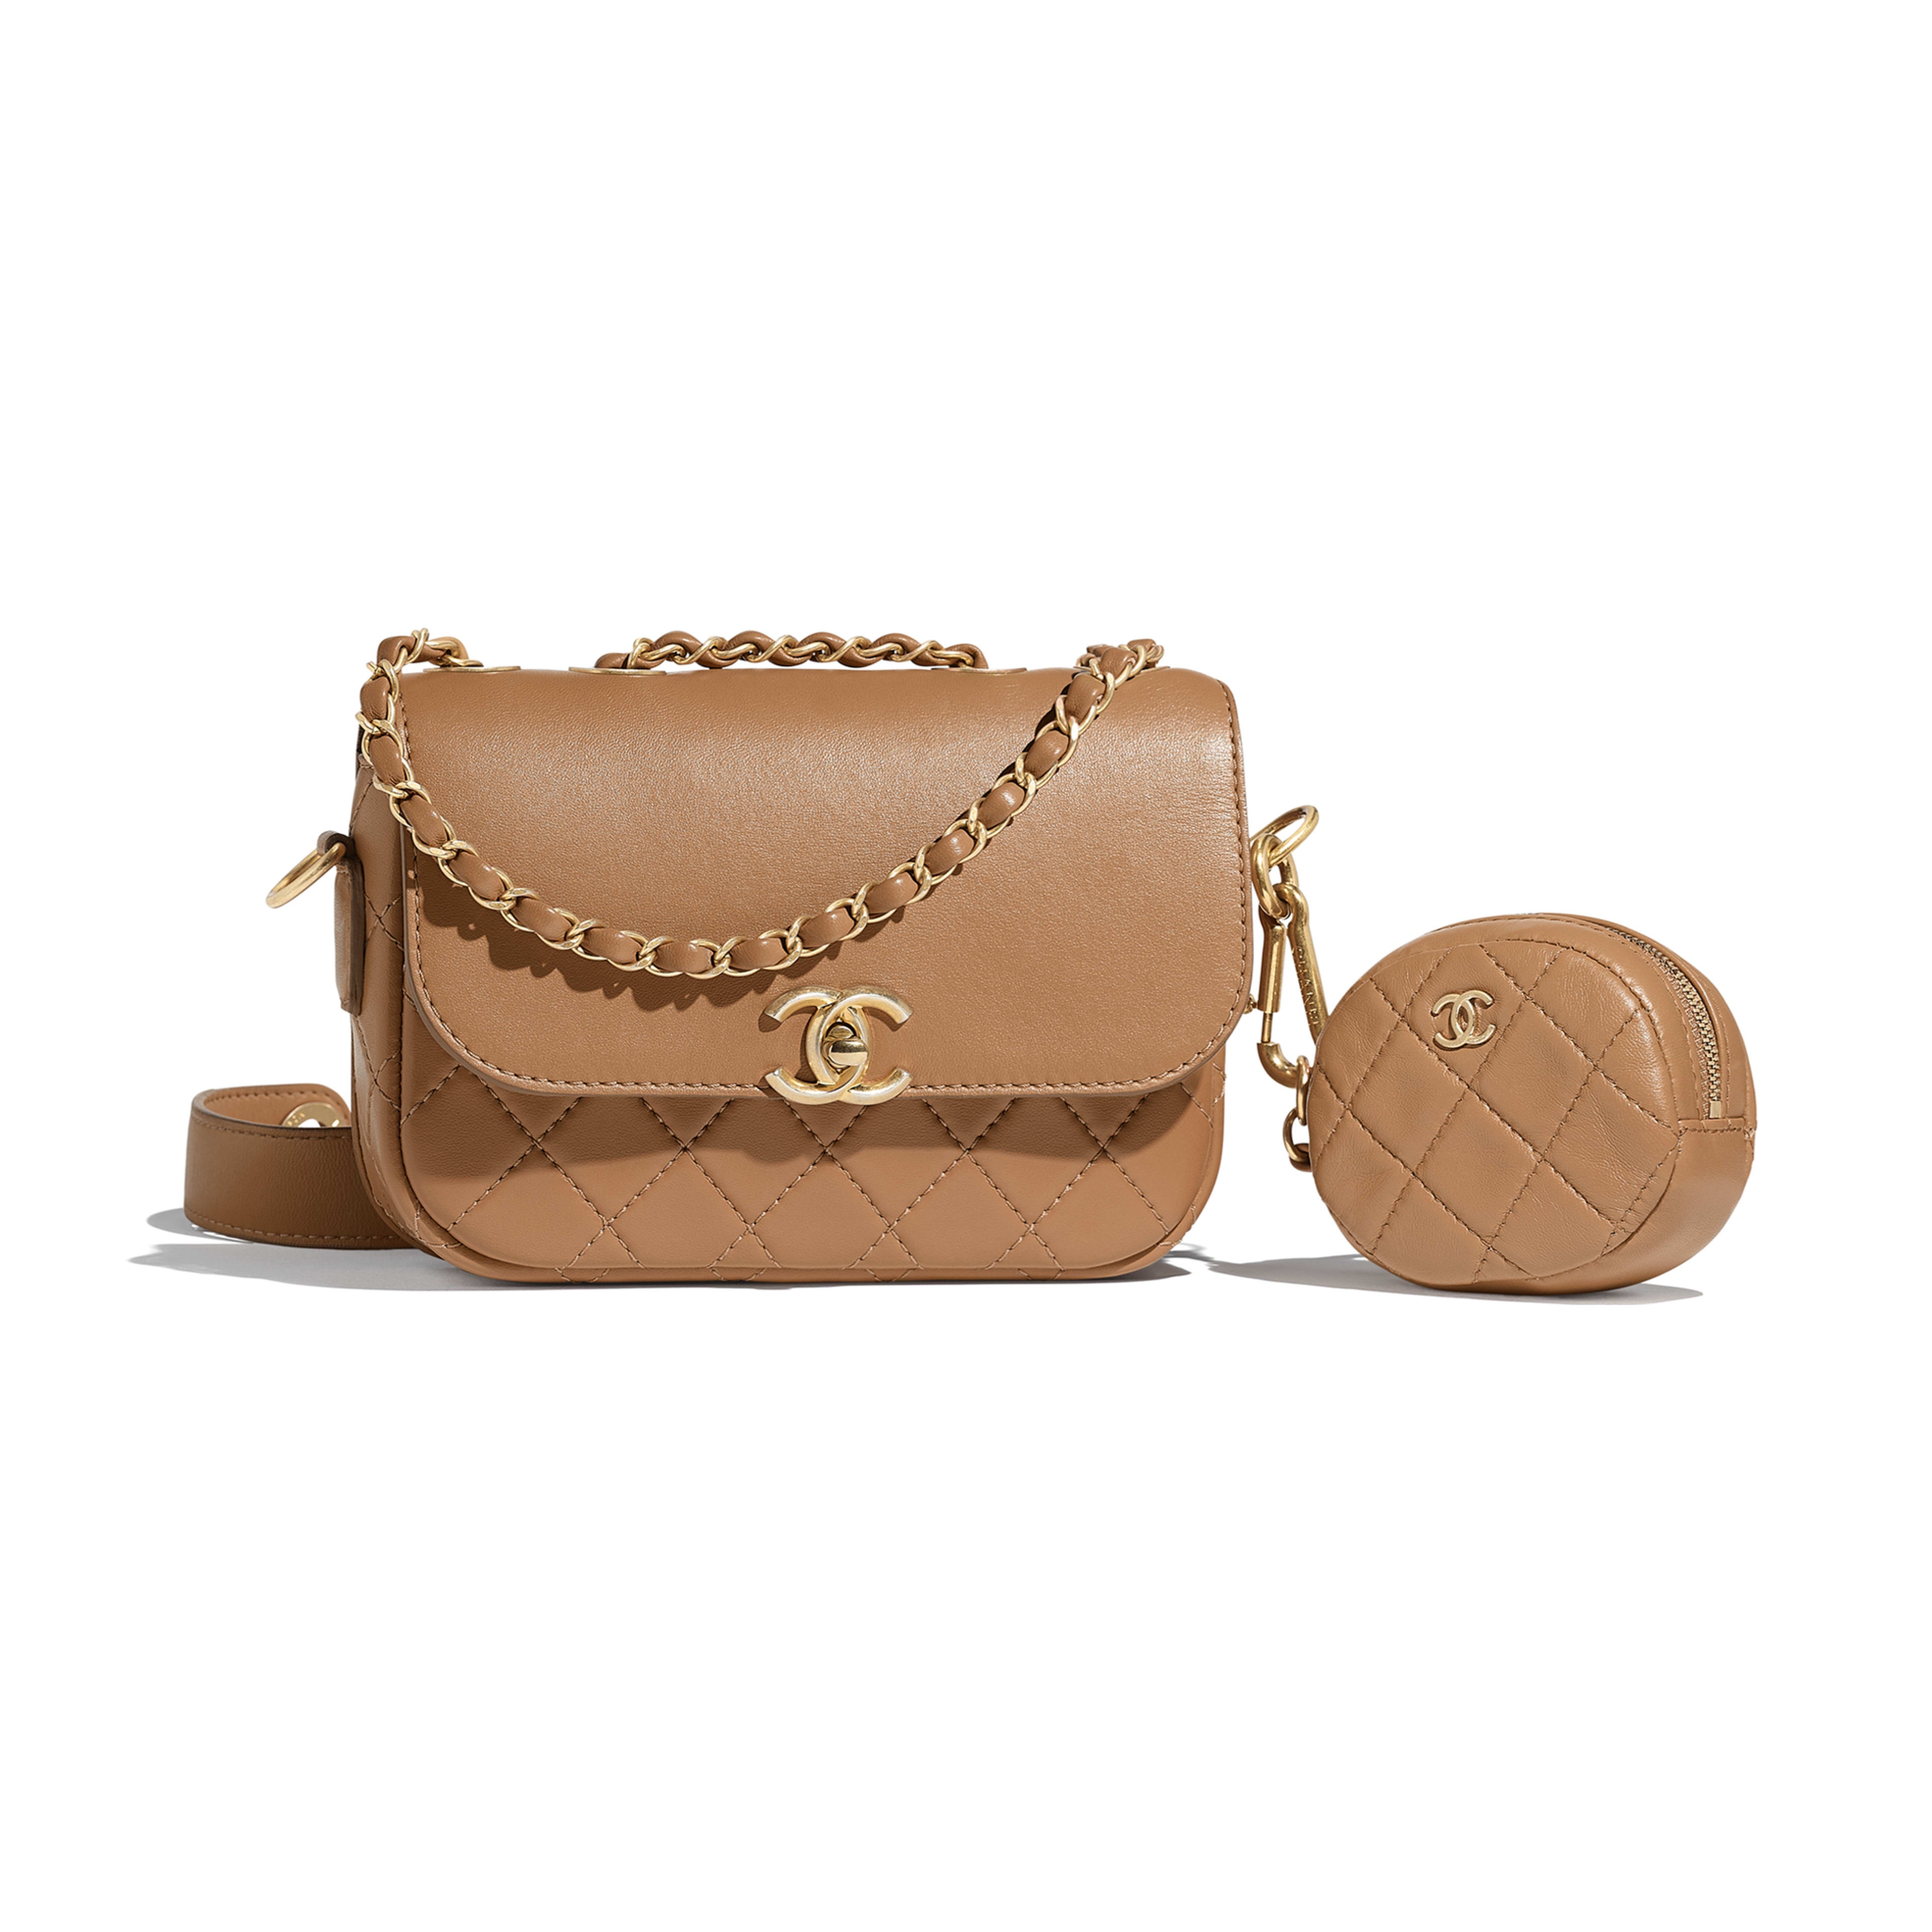 Flap Bag & Coin Purse - Beige - Calfskin & Gold-Tone Metal - Default view - see full sized version